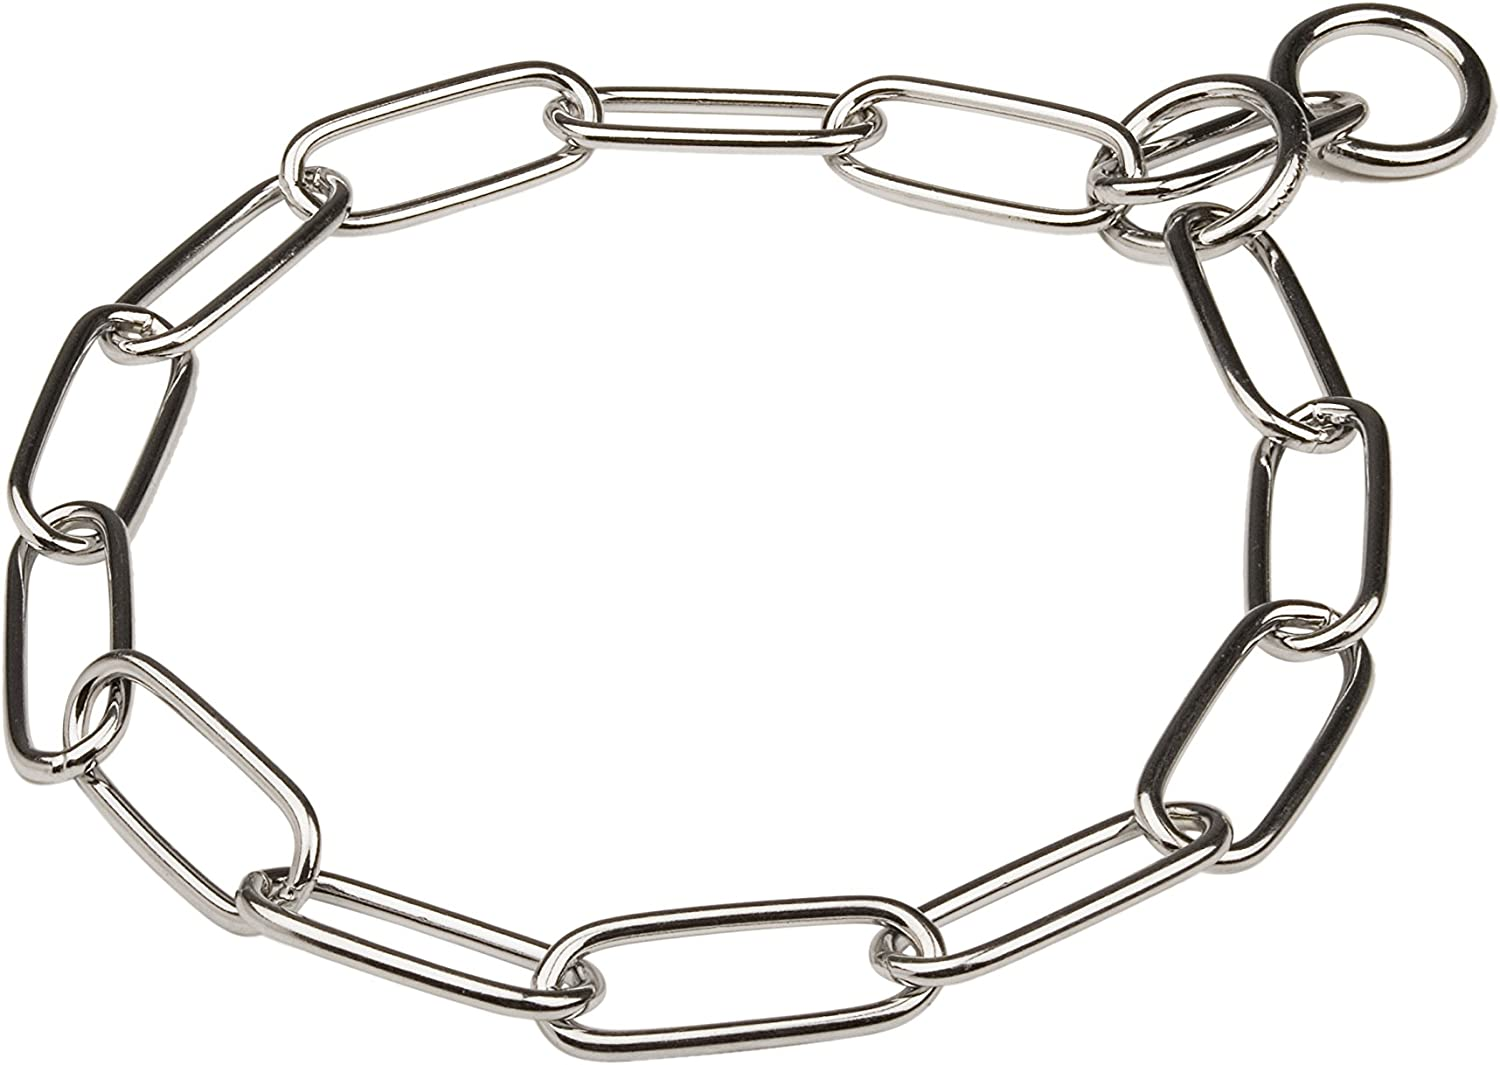 Herm Sprenger Chrome Plated Long Link Chain Collar 4 mm x 33 Inches